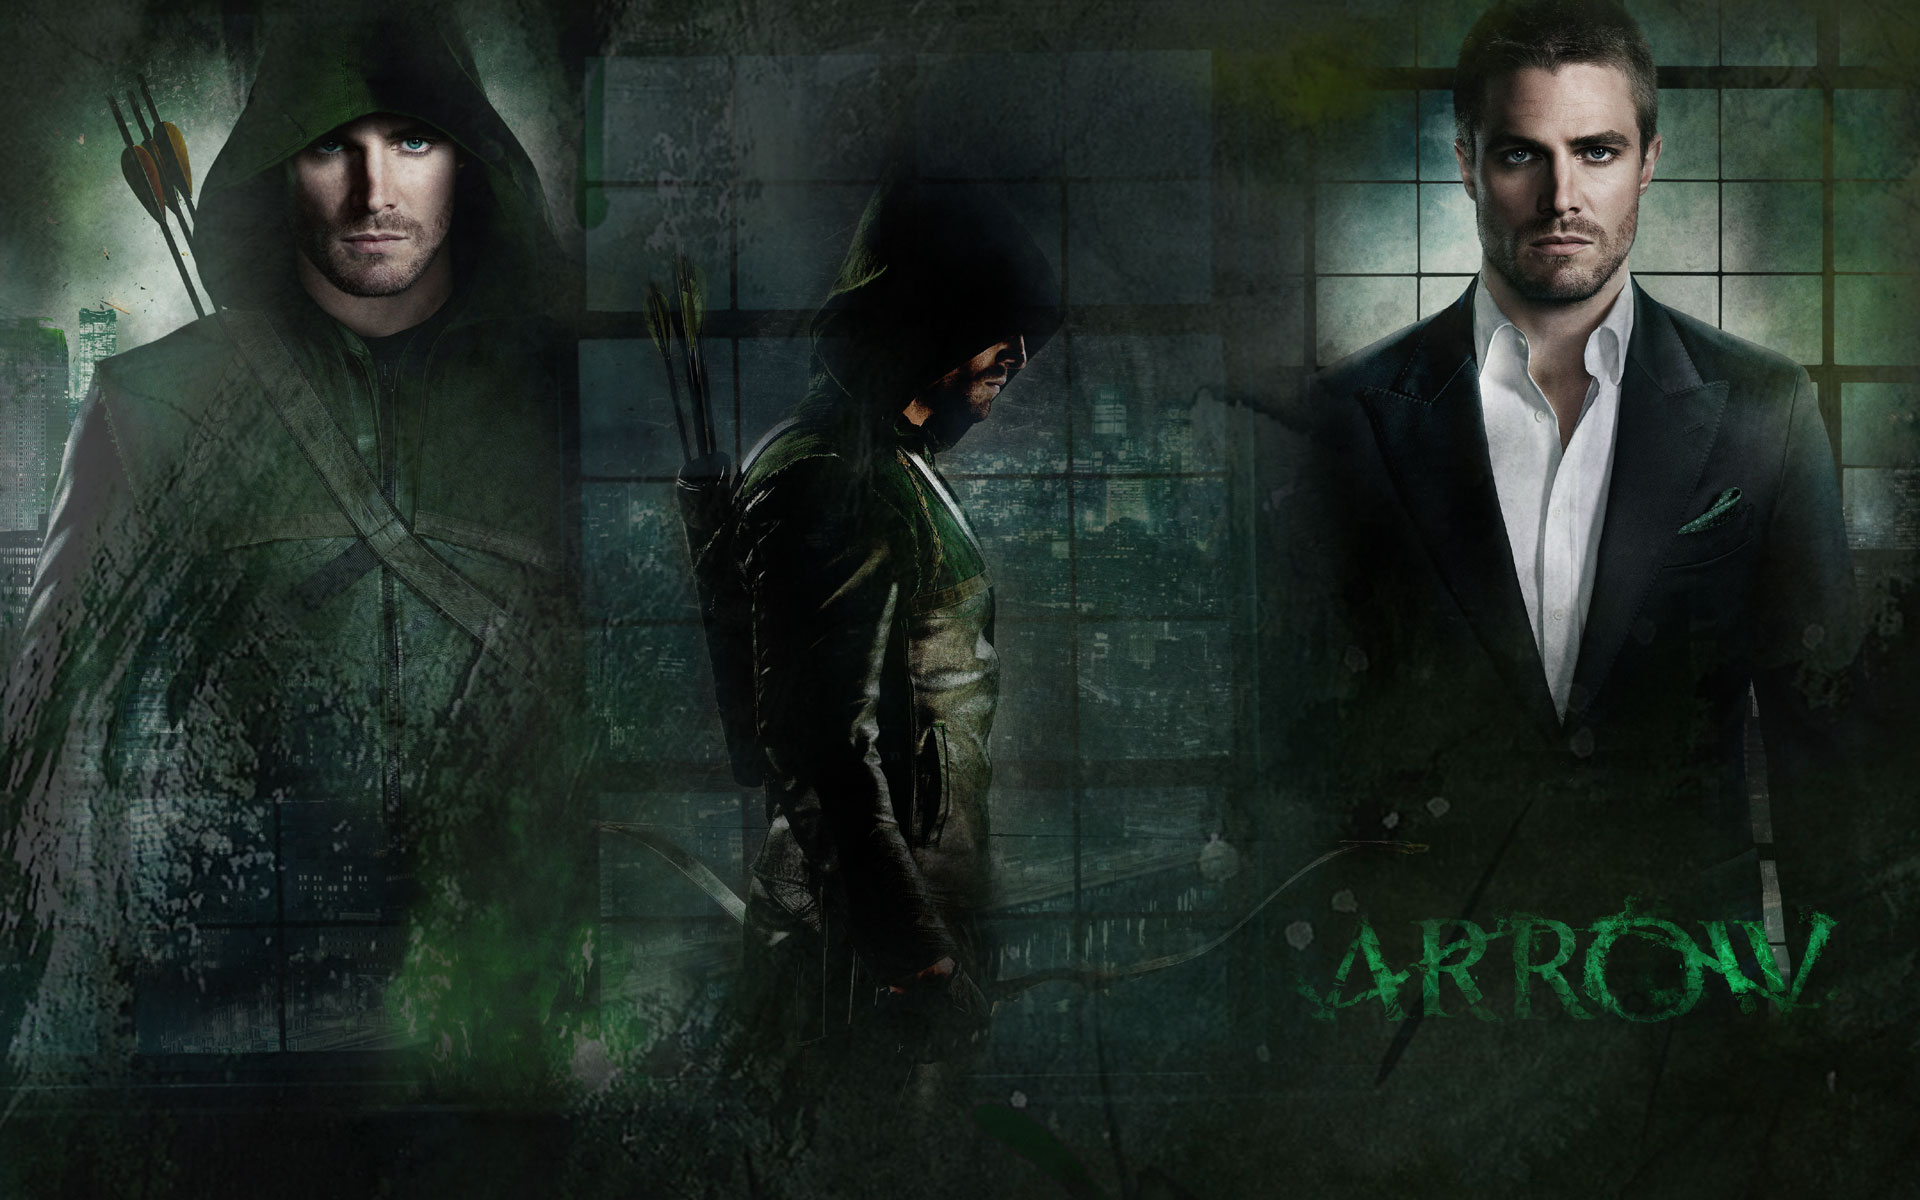 arrow cw tv show - photo #11